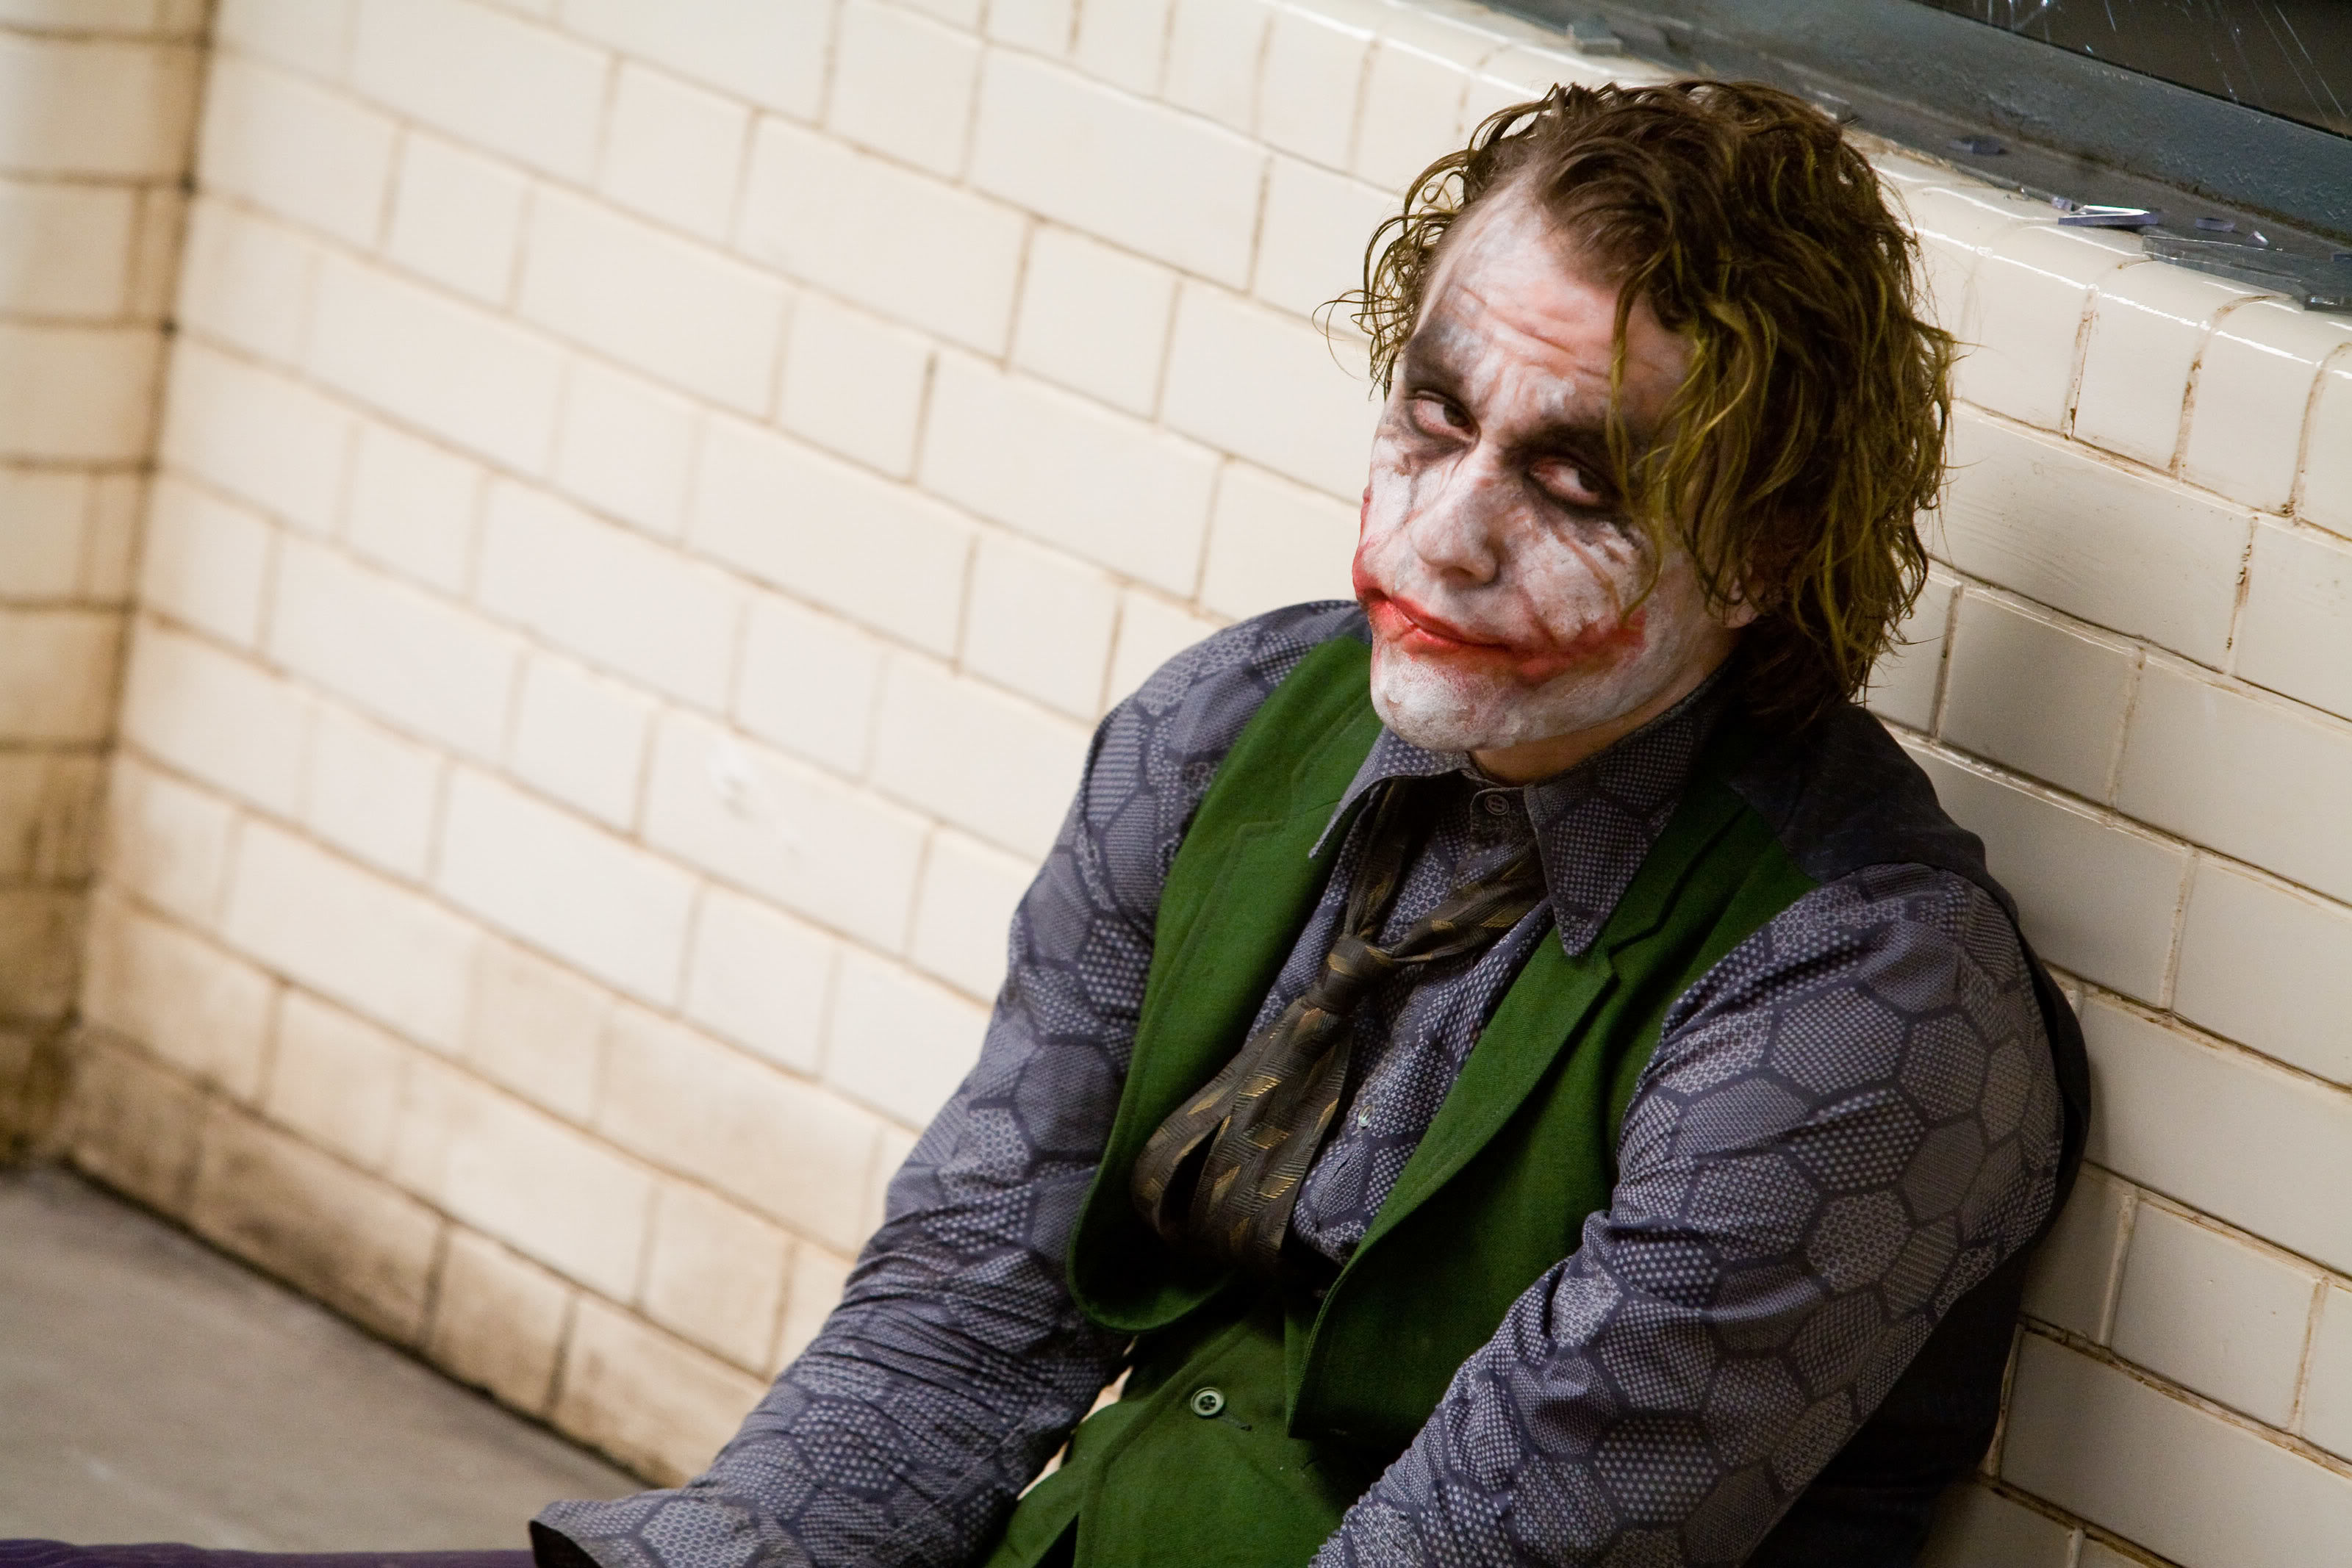 cannibalized chaos iago the joker and the good sport of tdkkkkkkkkkkkkkkkkkkkkkkkkkkkkkk 6 the joker the dark knight villain